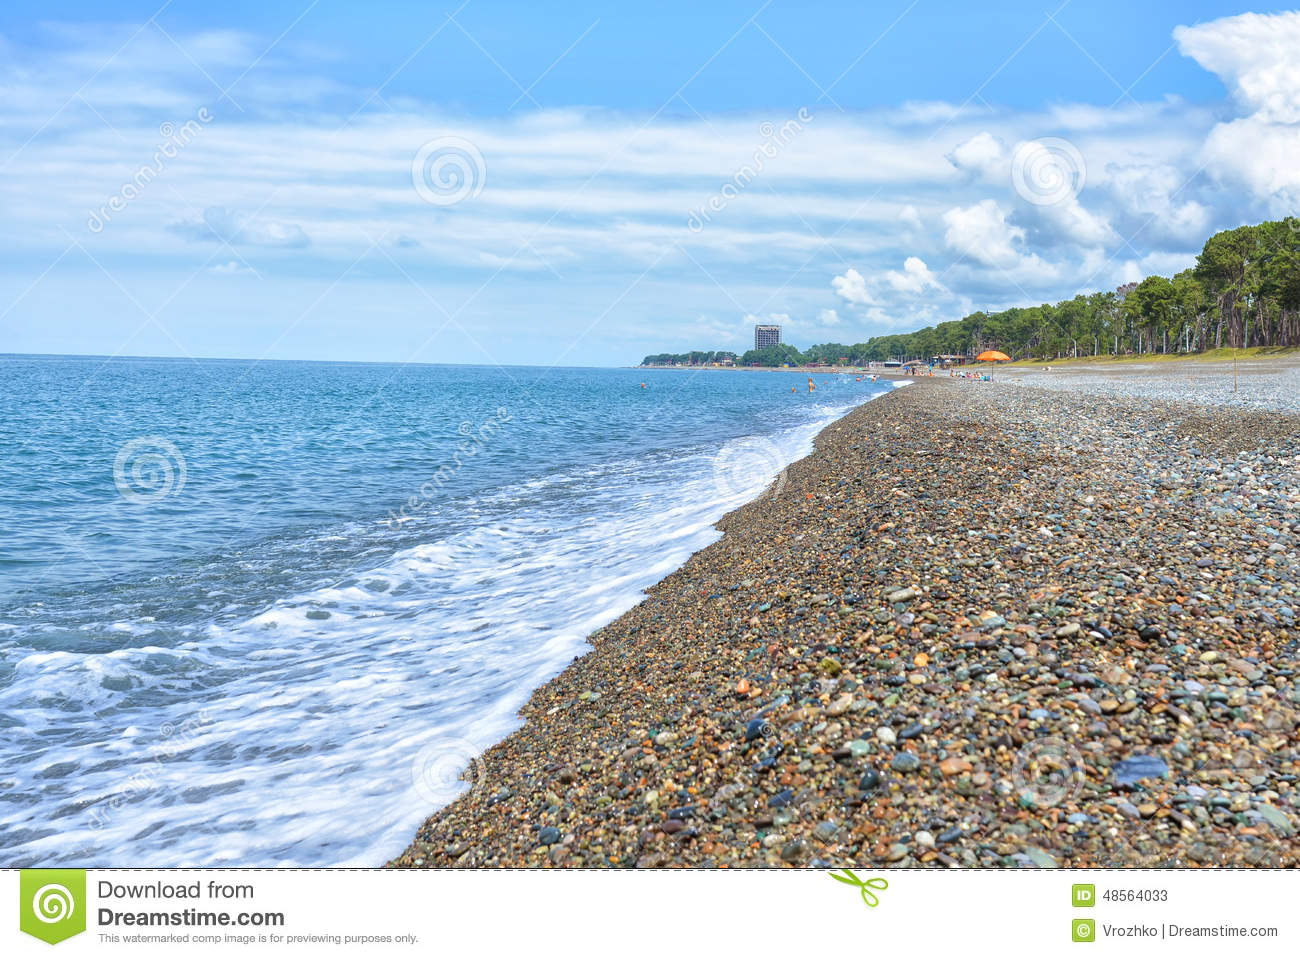 Georgia Batumi Beach Landscape Coast Black Sea Stock Photo